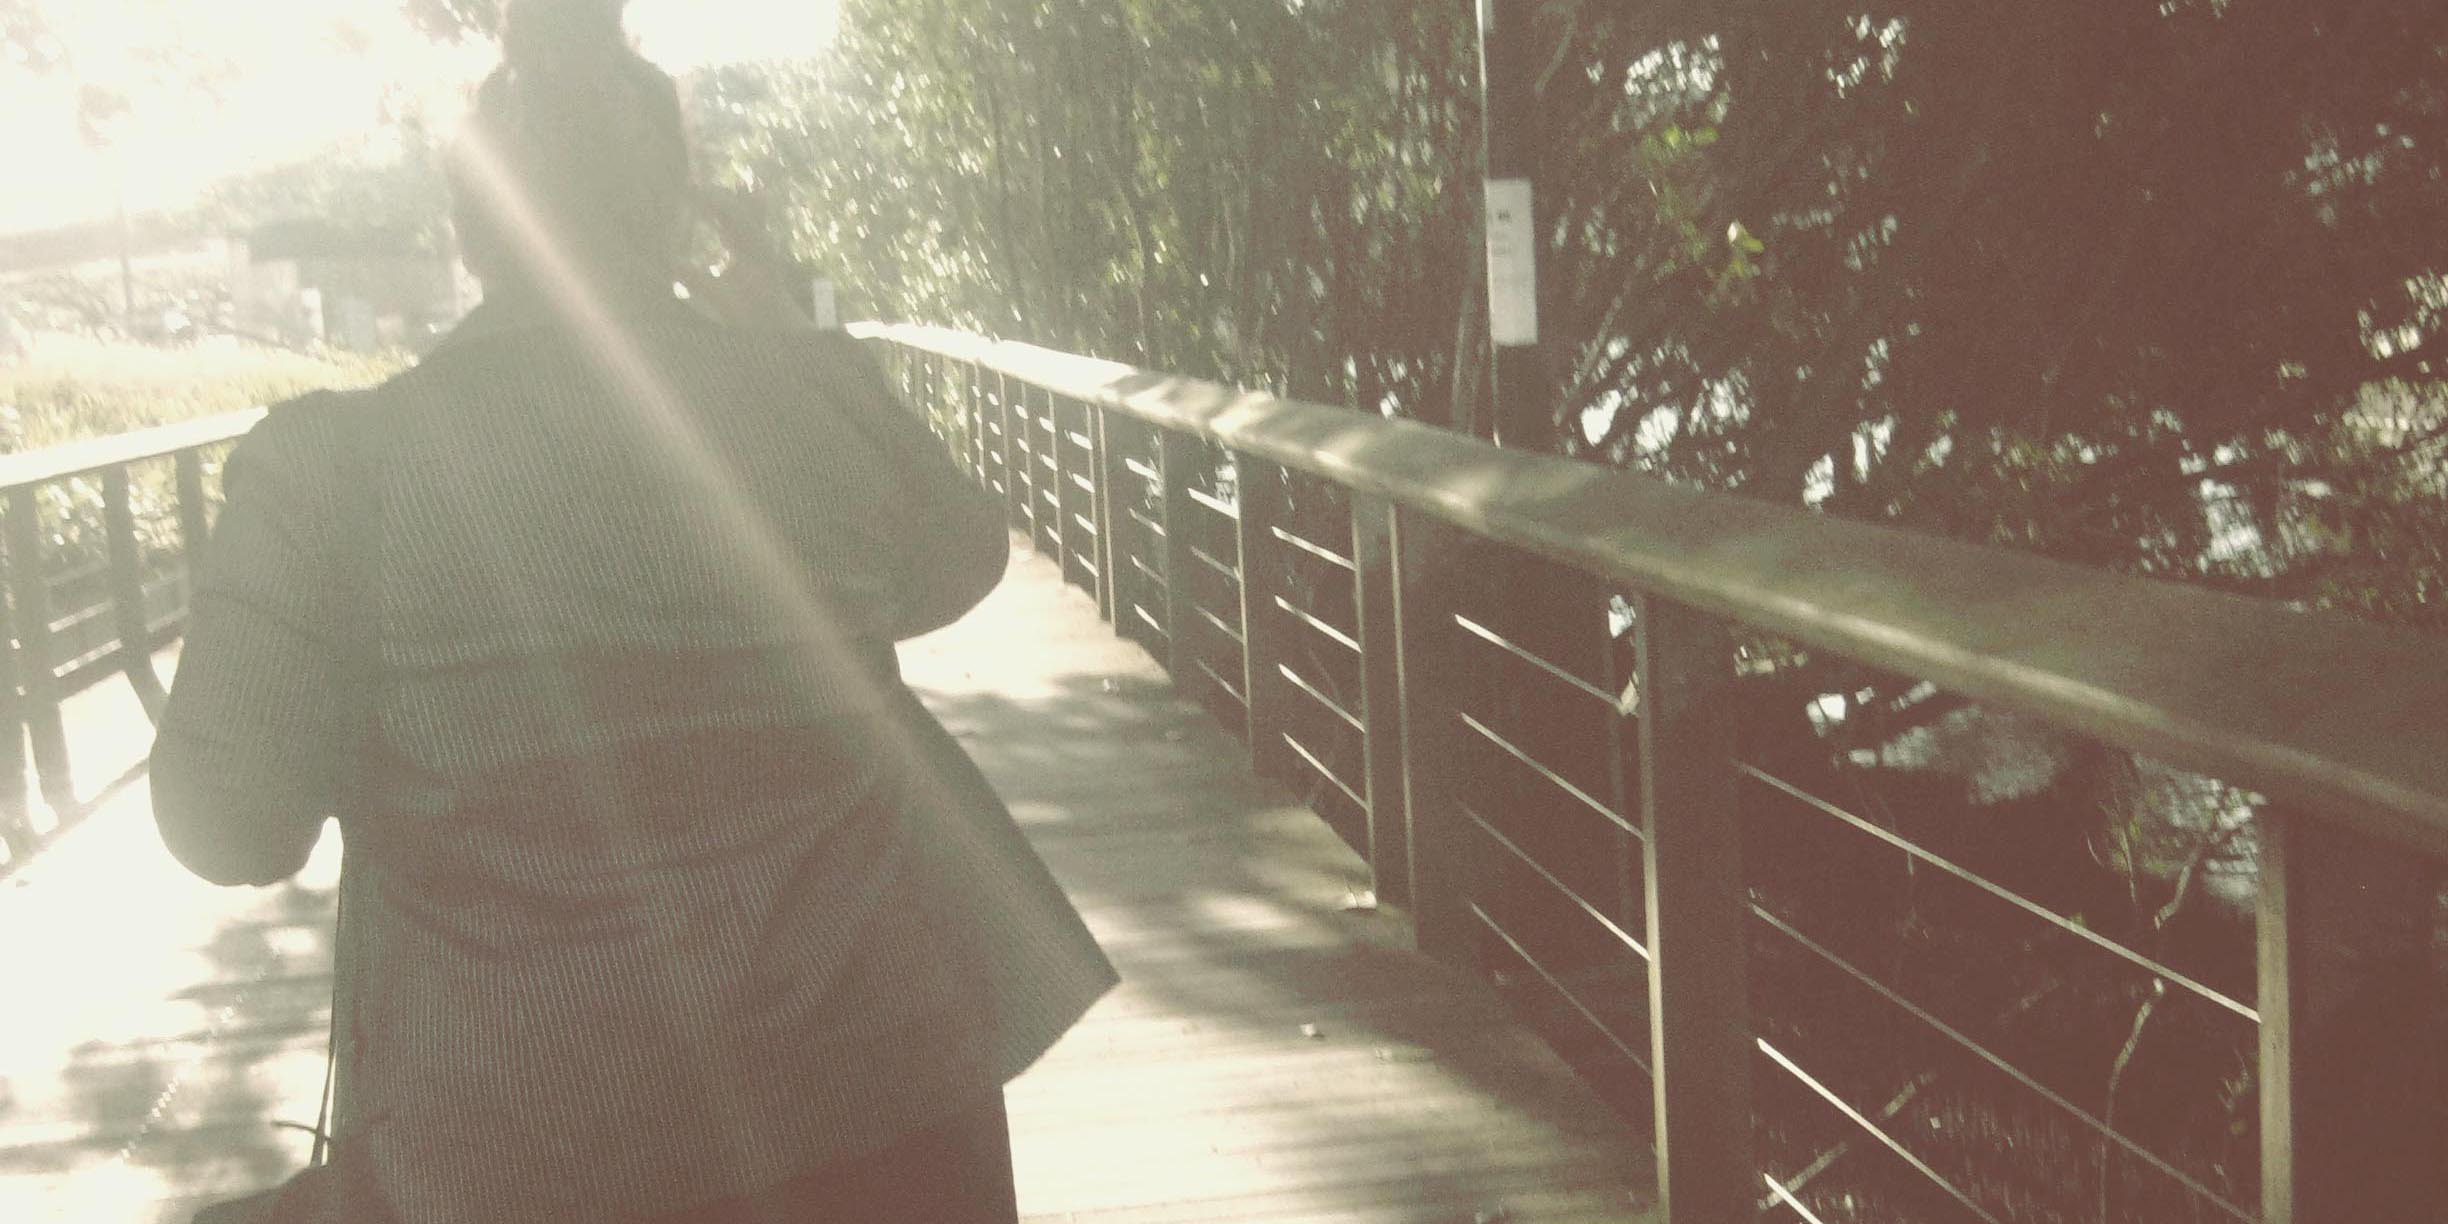 Photo of Natalie's silhouette, she's walking away from the camera along a wooden walkway into a solar flare.